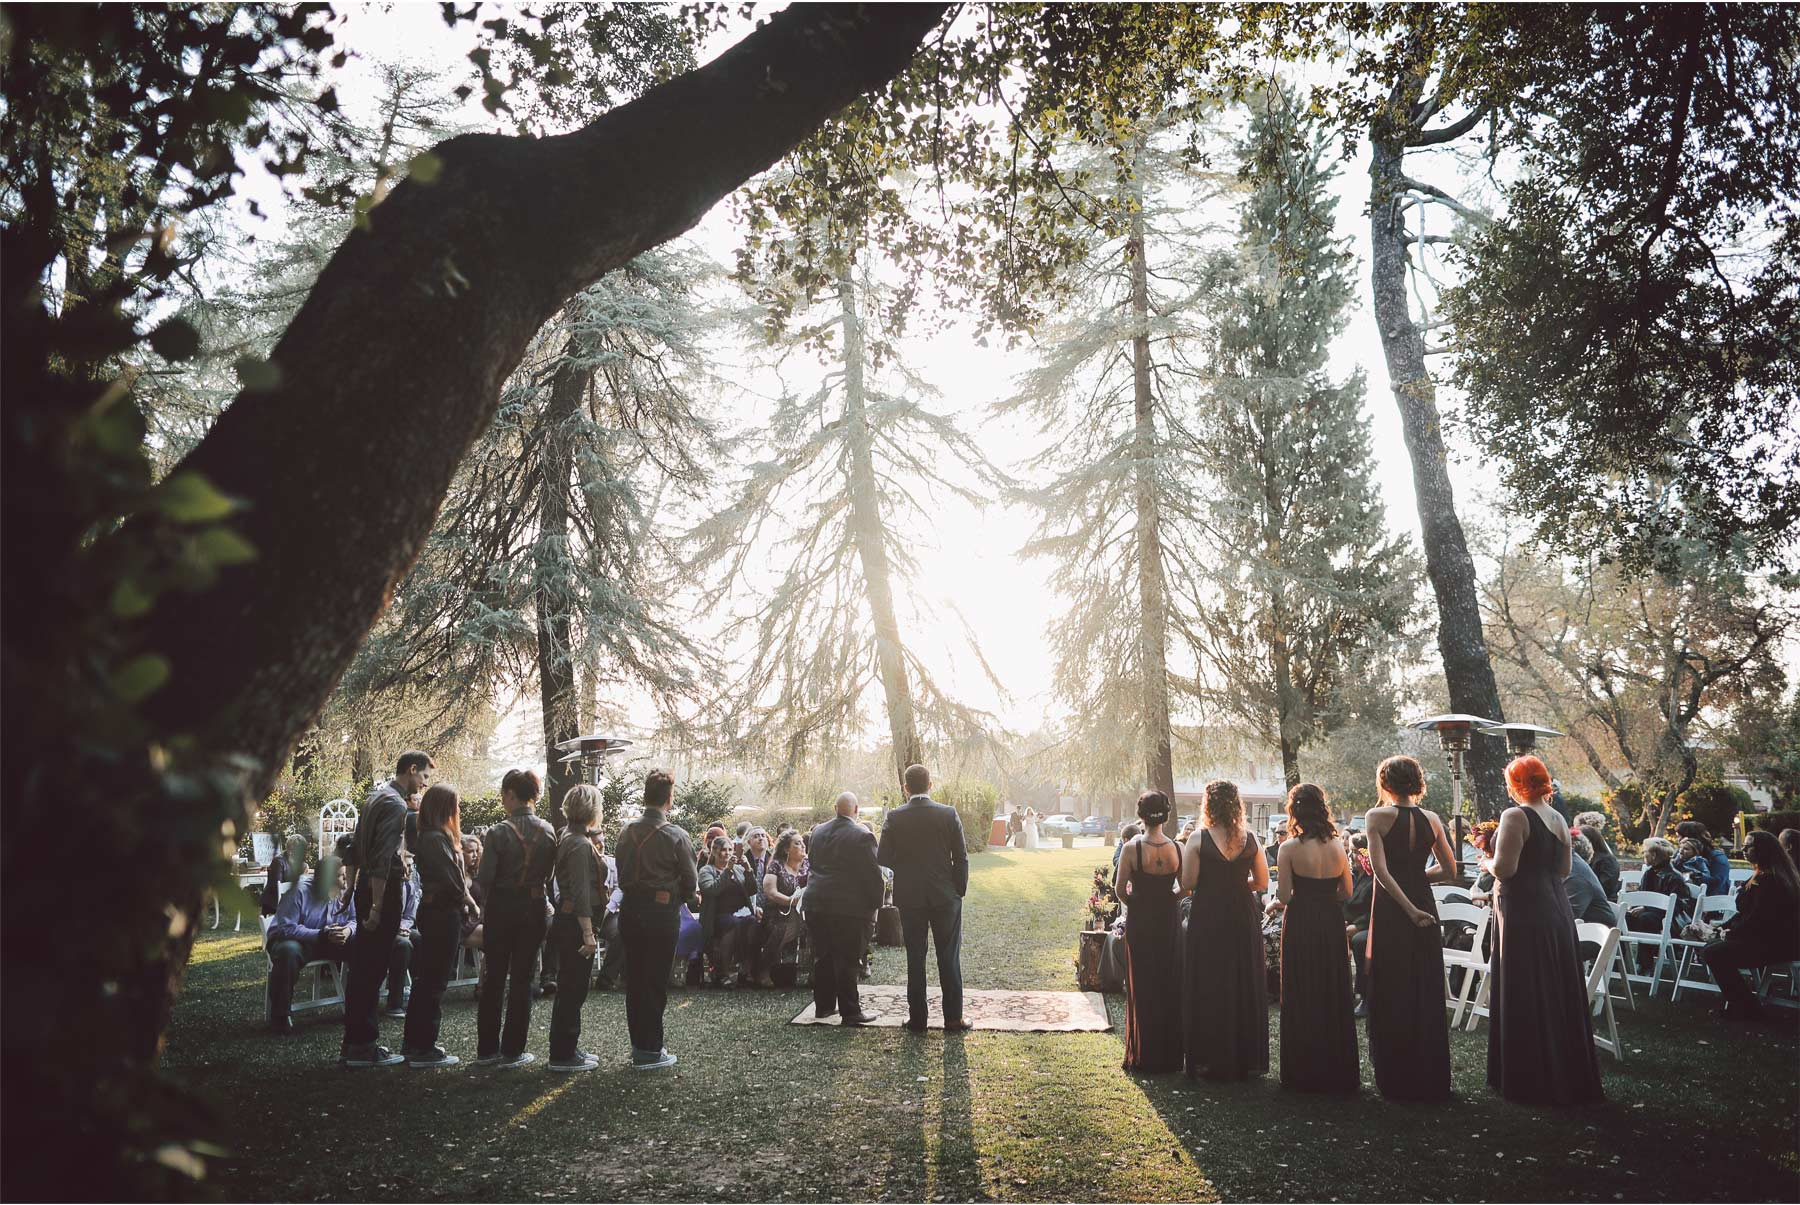 14-Los-Angeles-California-Wedding-Photographer-by-Vick-Photography-Highland-Springs-Ranch-LGBT-Outdoor-Ceremony-Trees-Rebecca-and-Terri.jpg